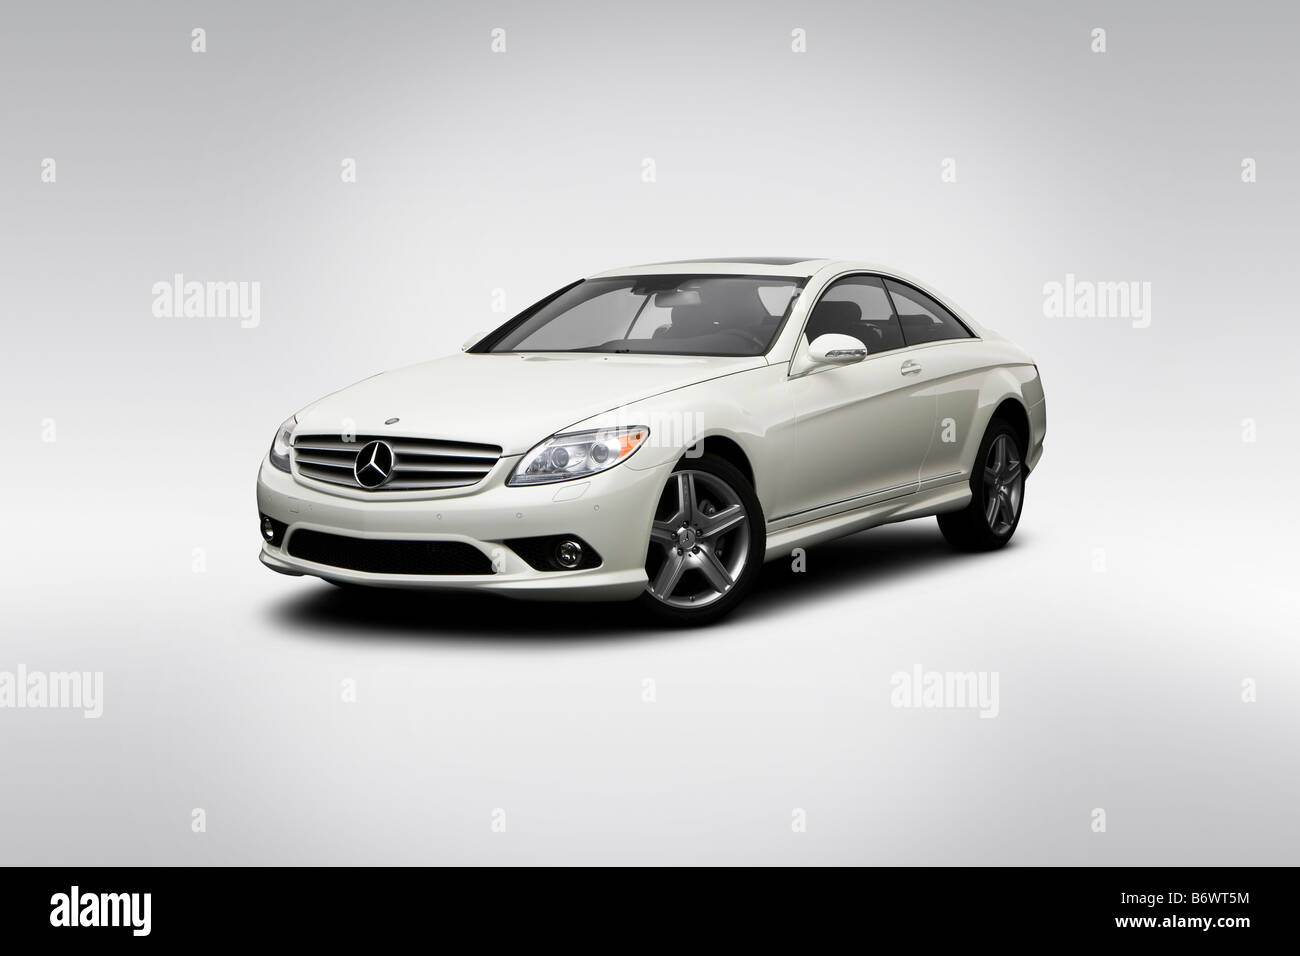 2009 Mercedes Benz CL Class CL500 In White   Front Angle View   Stock